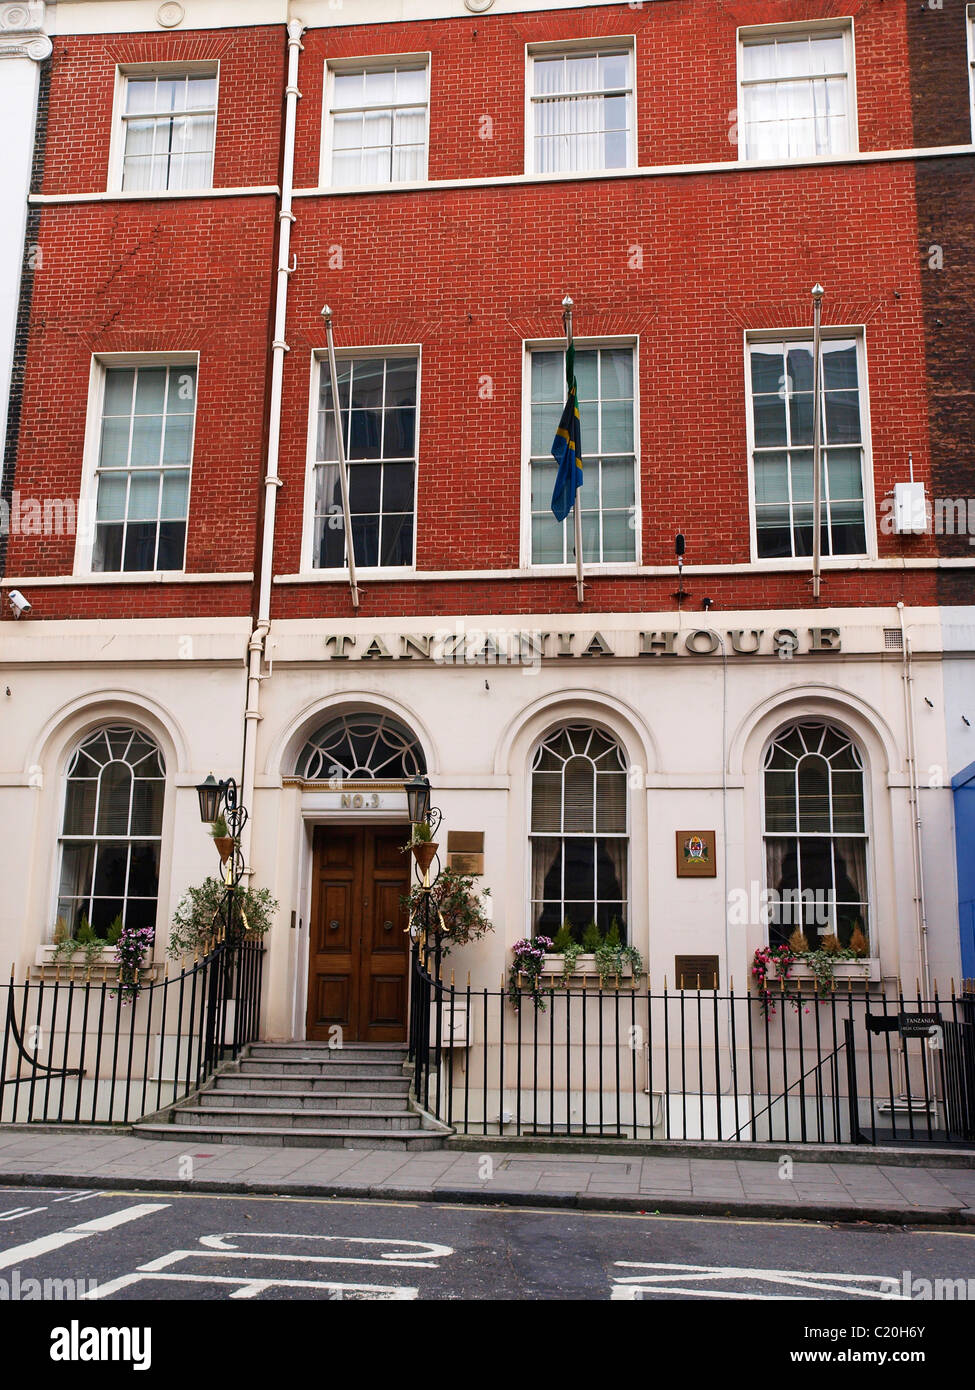 Tanzanian High Commission in London Tanzania House 3 Stratford Place London W1C 1AS - Stock Image